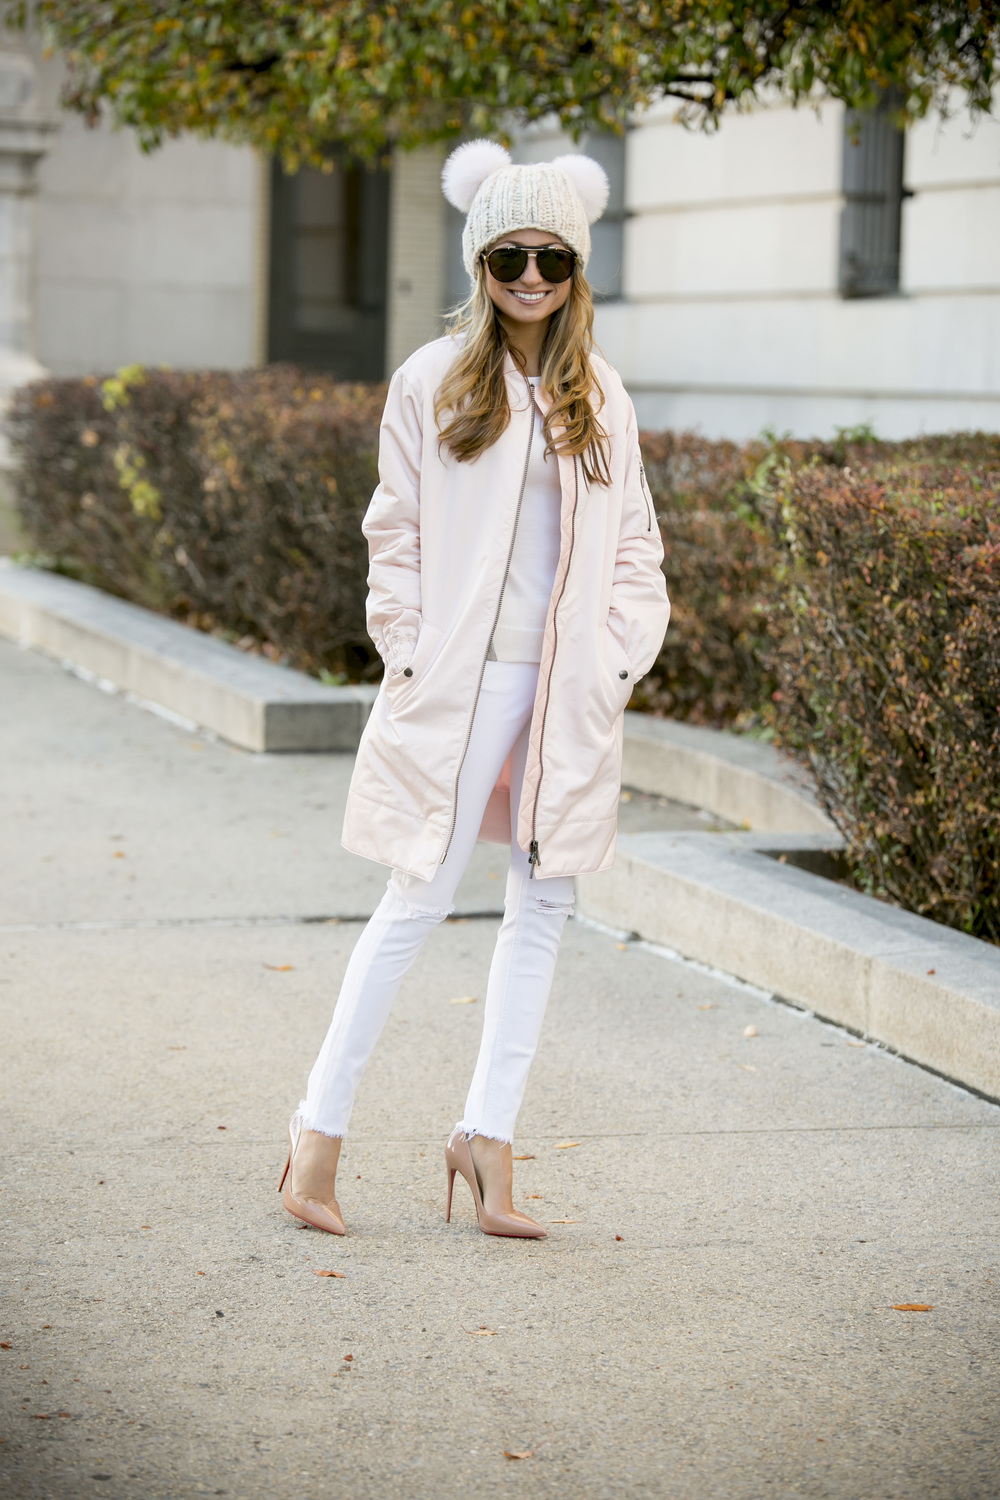 Banana Republic Jacket and Eugenia Kim Hat